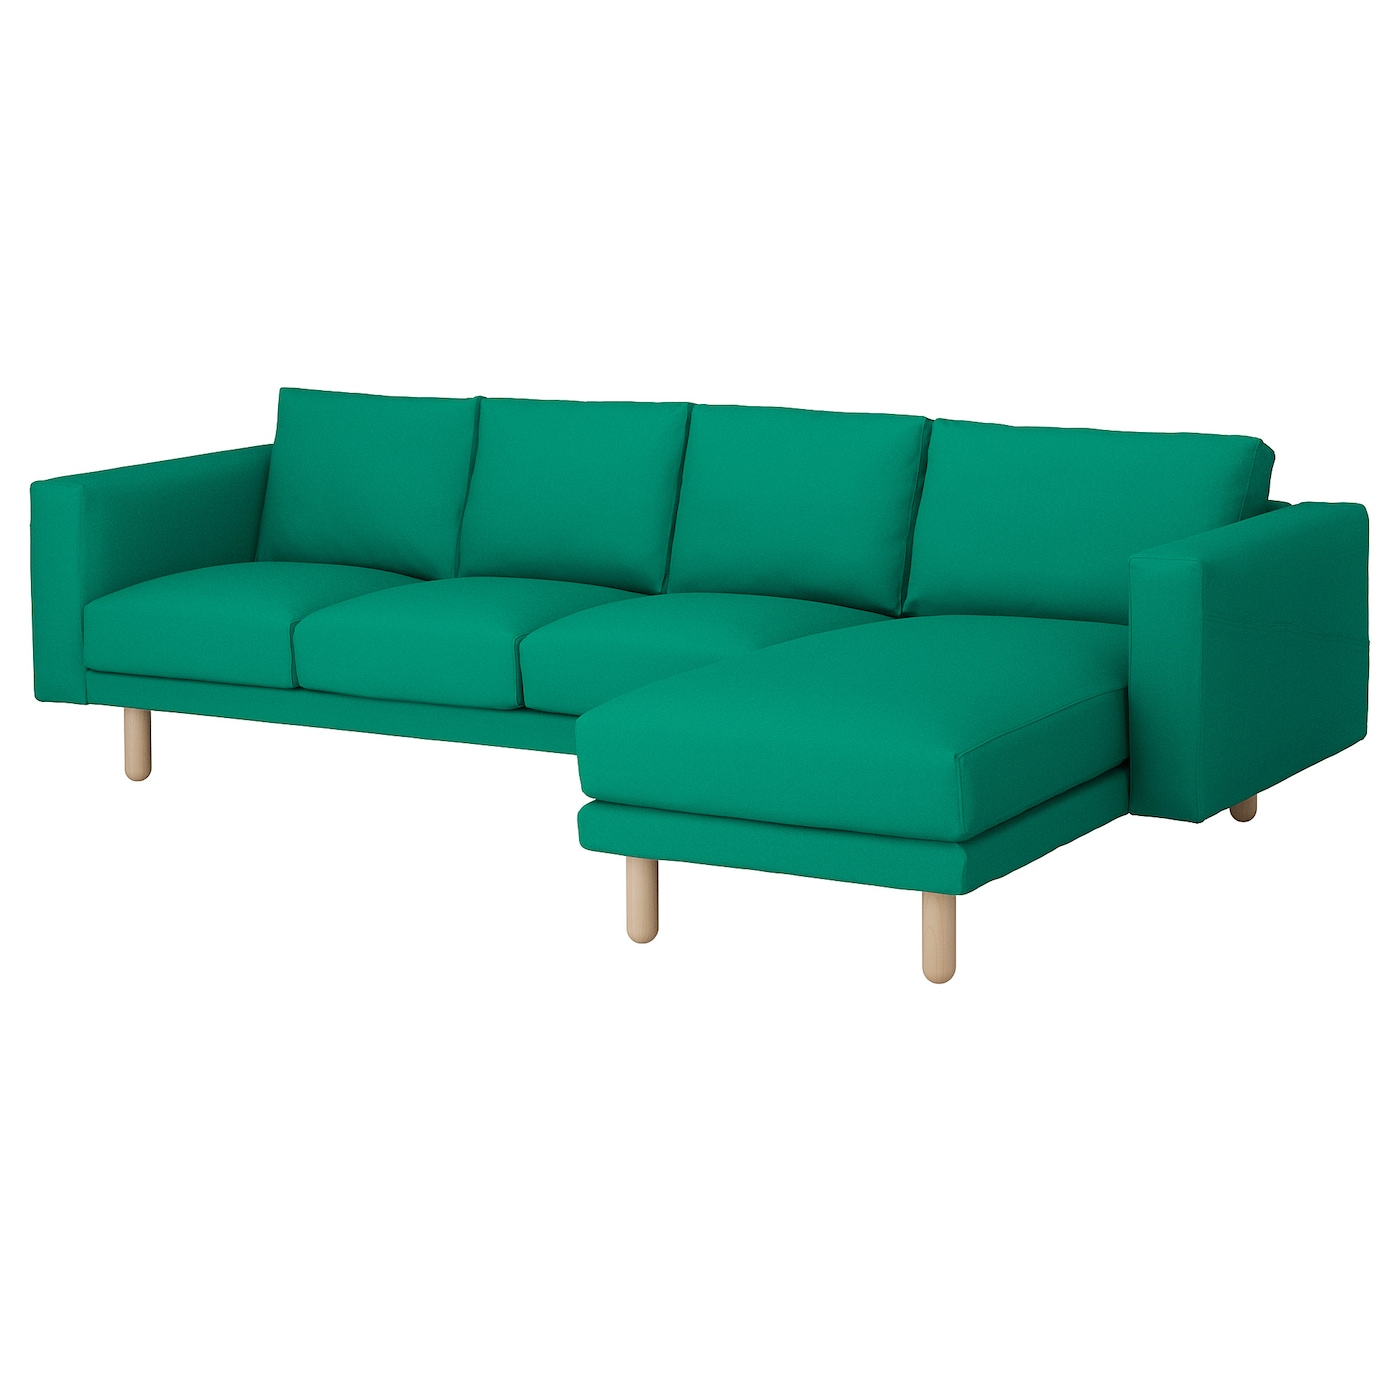 IKEA NORSBORG 4-seat sofa 10 year guarantee. Read about the terms in the guarantee brochure.